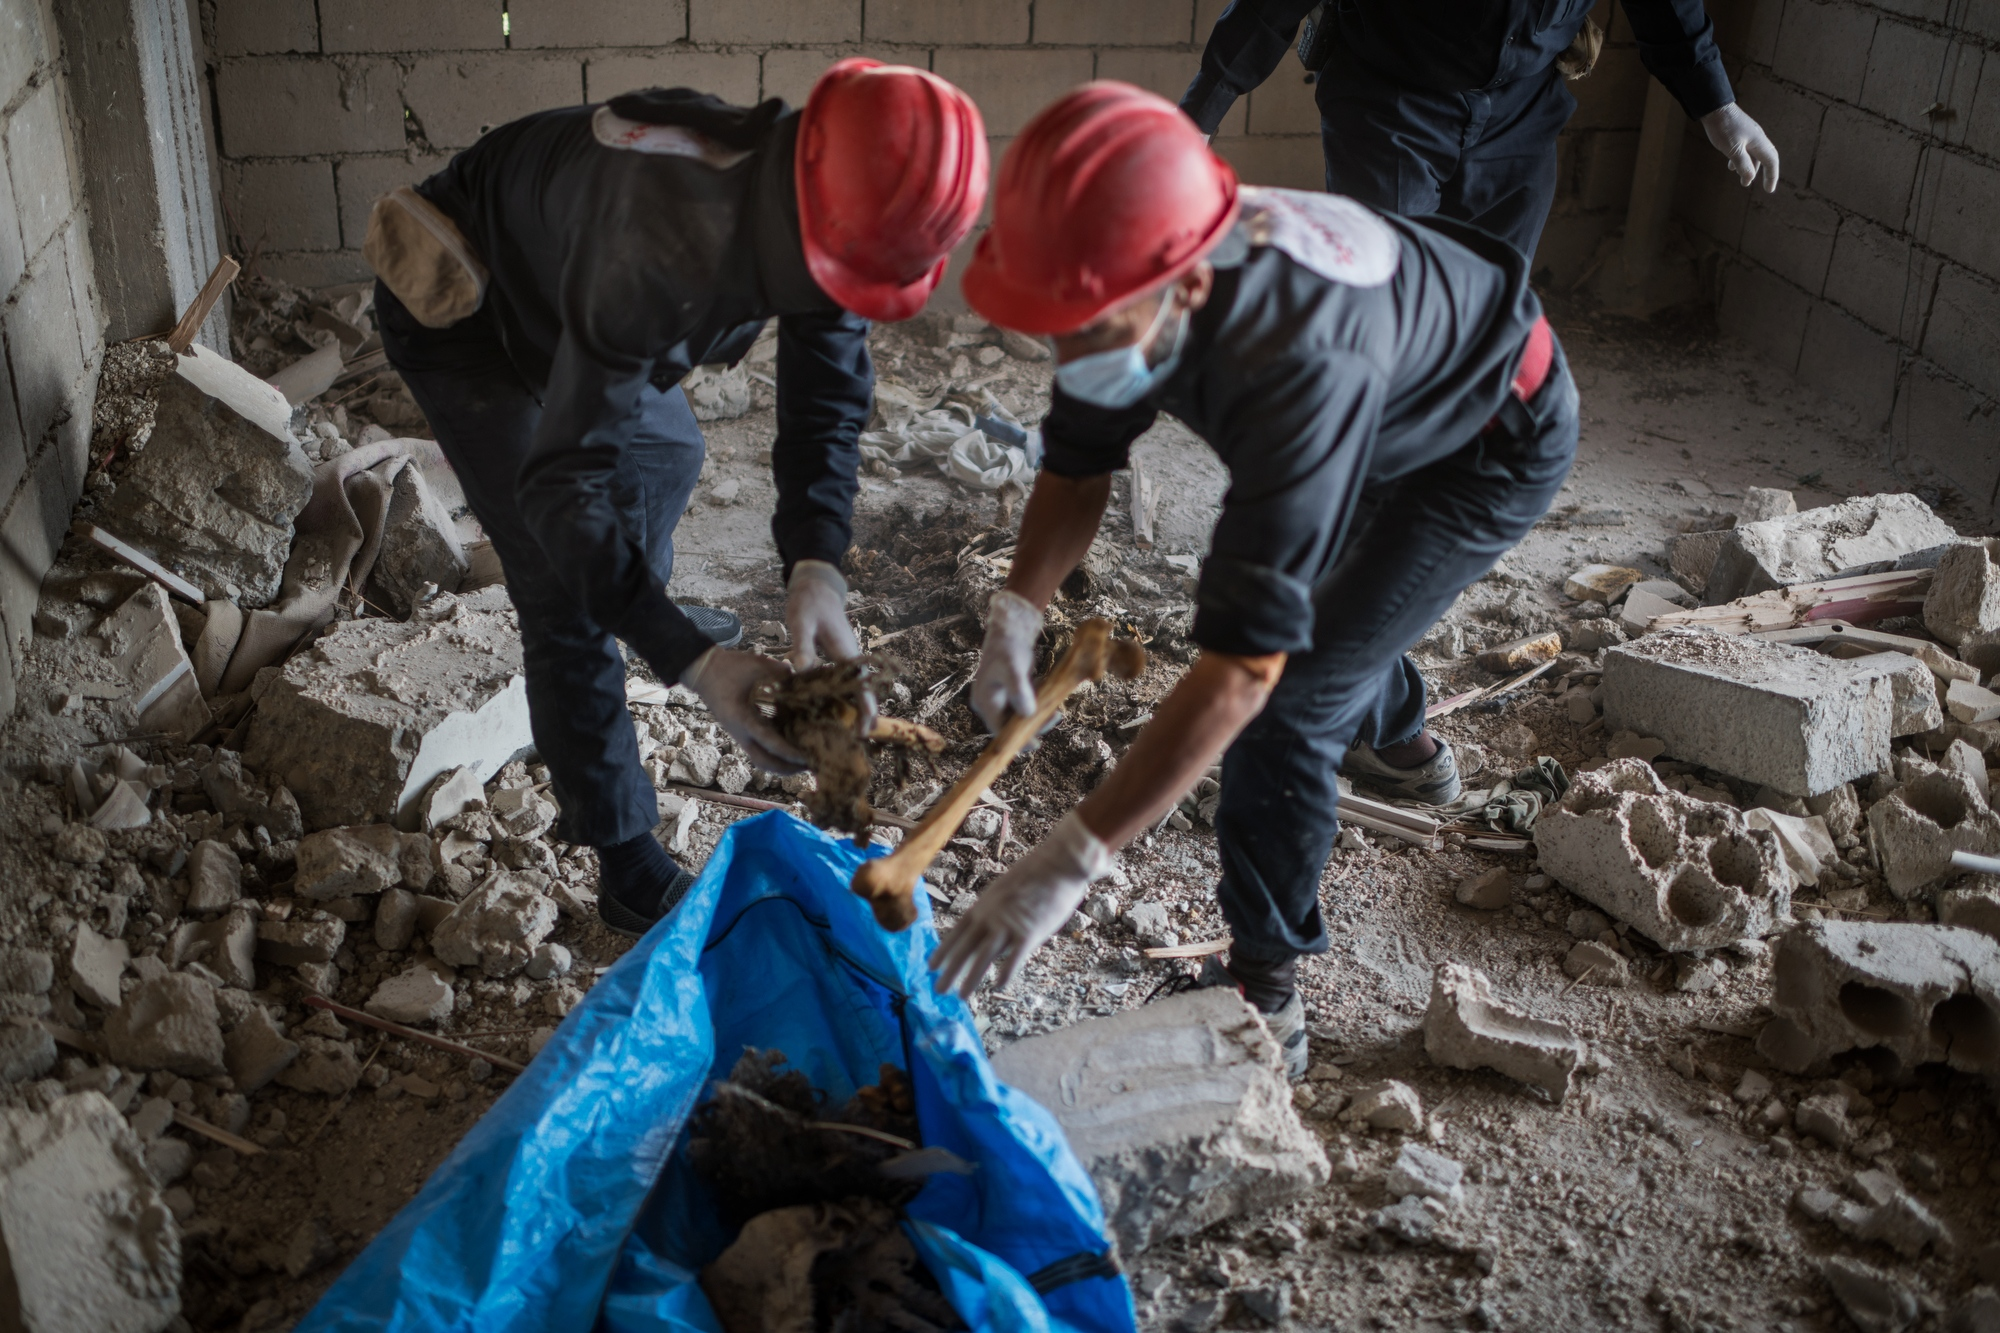 The first responders team have found two bodies on the second floor of a residential building. They are trying to check for improvised explosive devices and state that the bodies have remains of suicide vests on them. After seeing that nothing exploded they start scraping up the human remains and put them in a body bag.